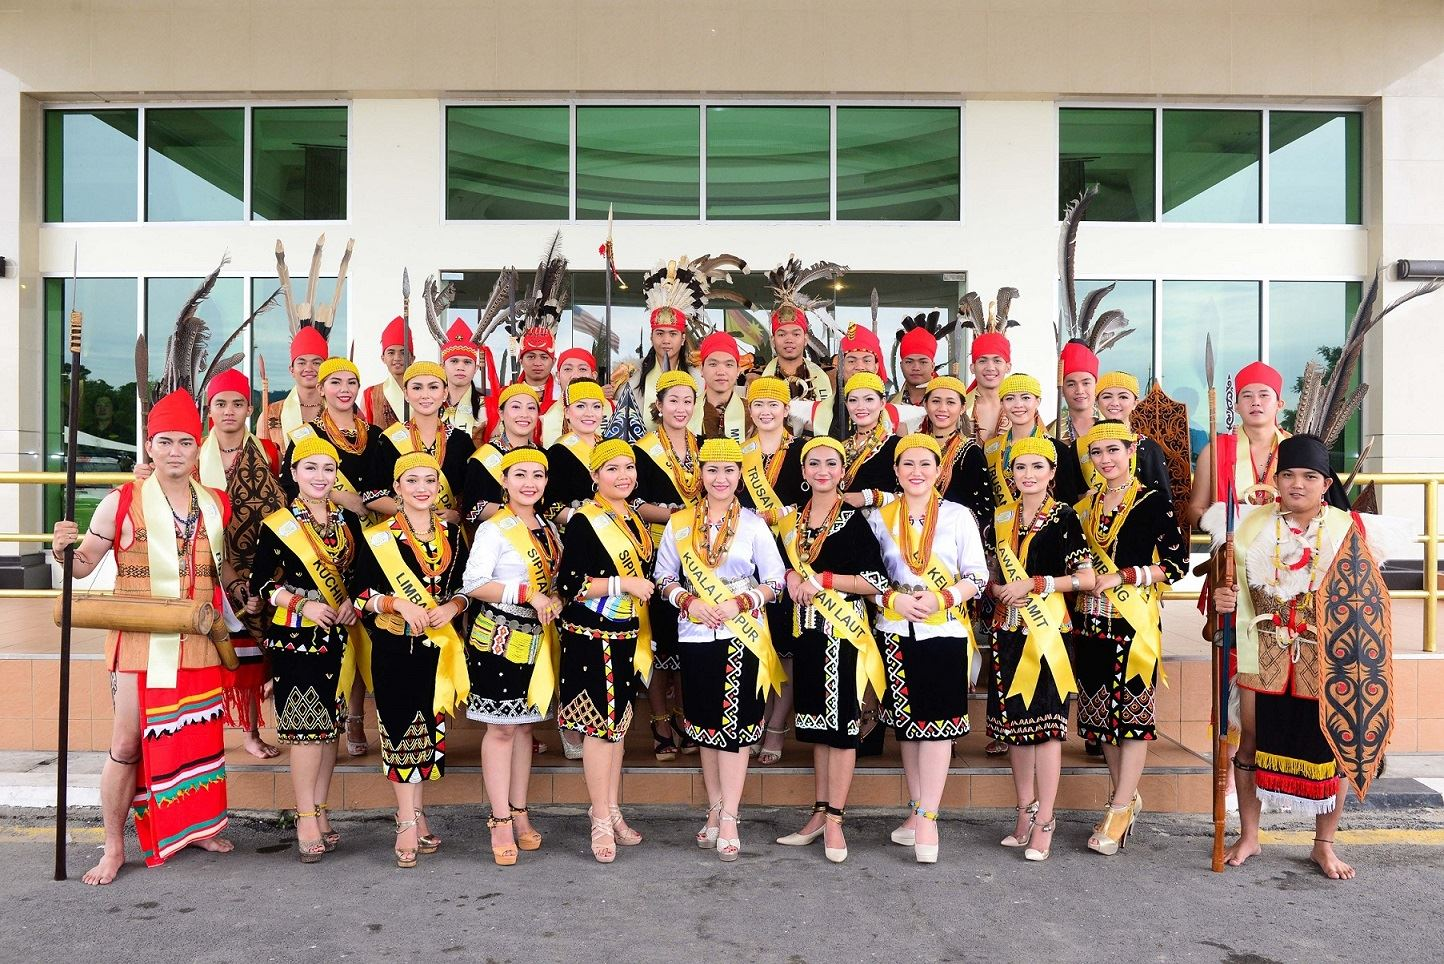 authentic, culture, dayak, Ethnic, heritage, indigenous, Irau Aco Festival, Lawas, Limbang, malaysia, native, Padan Liu Burung, Ruran Ulung, Event, Tourism, traditional, travel guide, tribal,